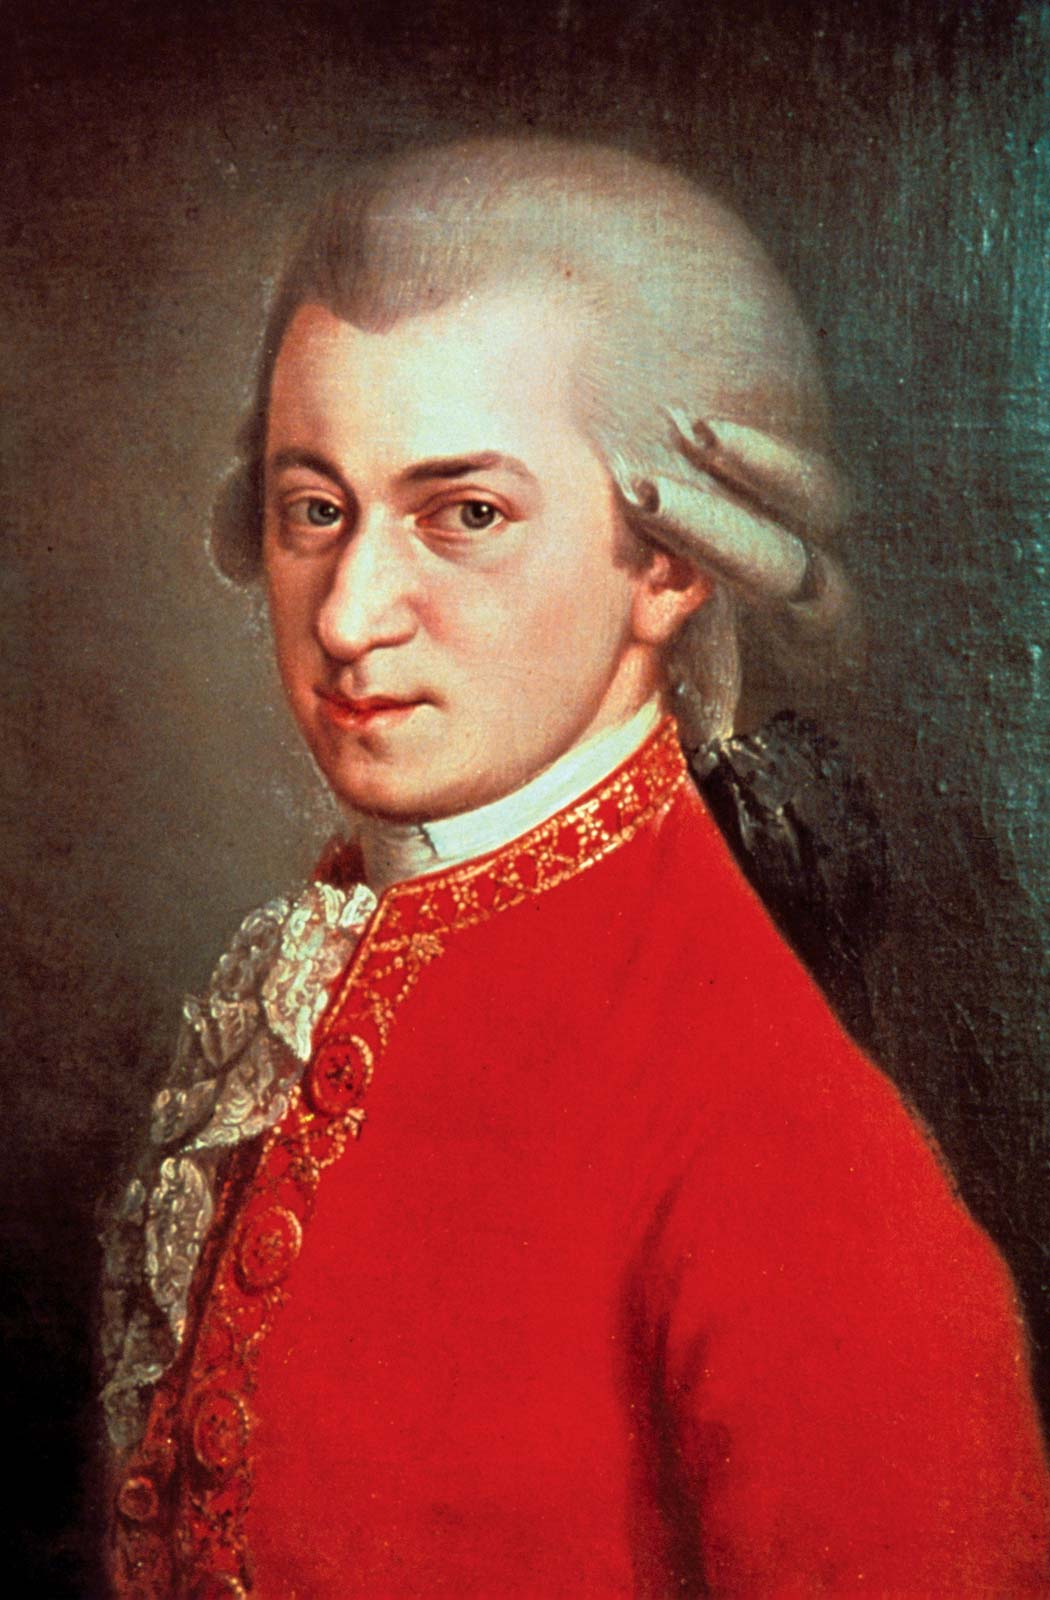 Pastimes for a LIfetime covers the CD release featuring a work by Wolfgang Amadeus Mozart